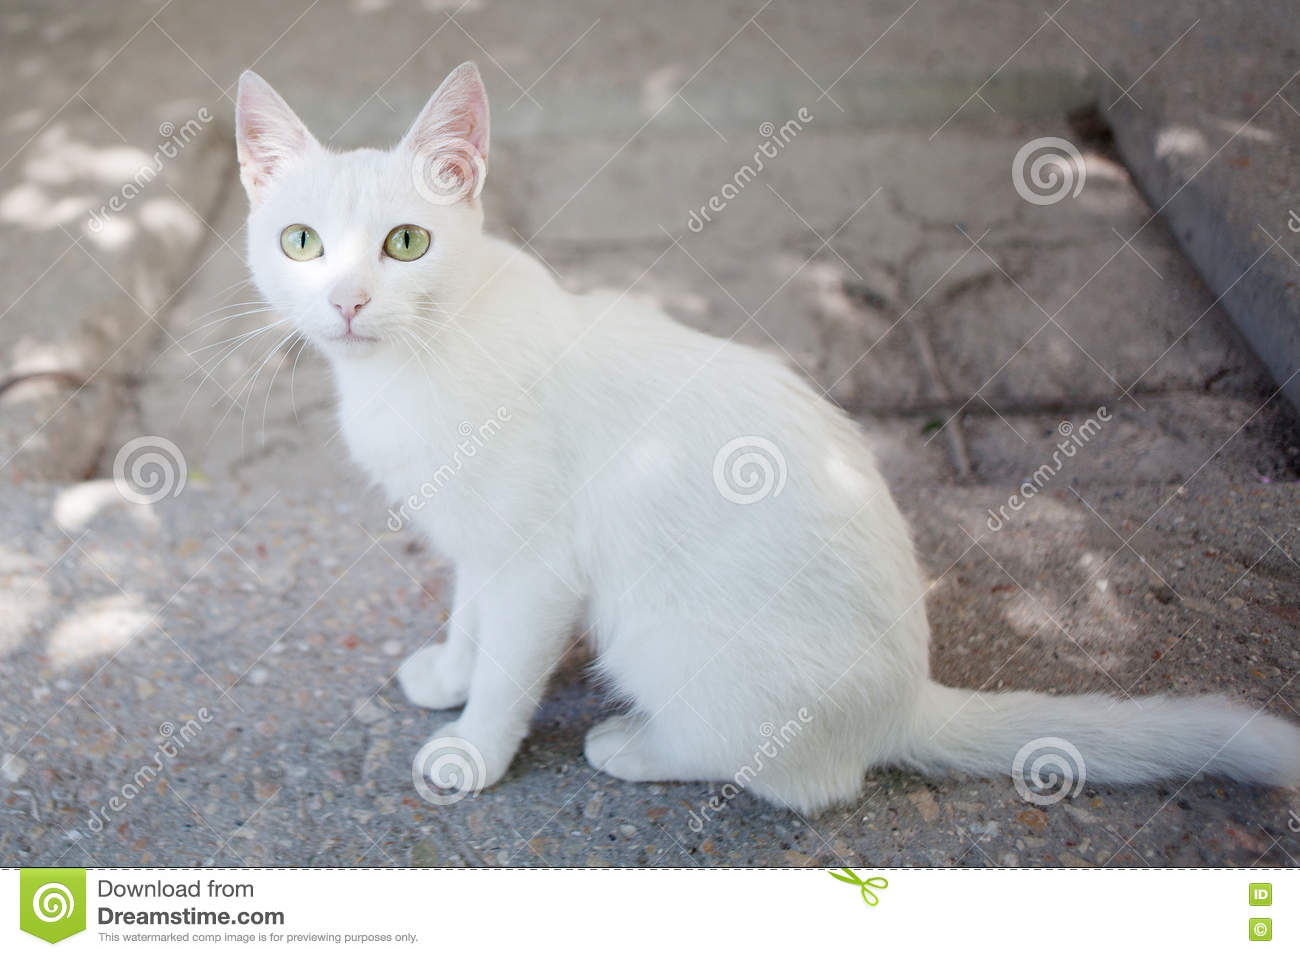 White alley cat sits on the ground